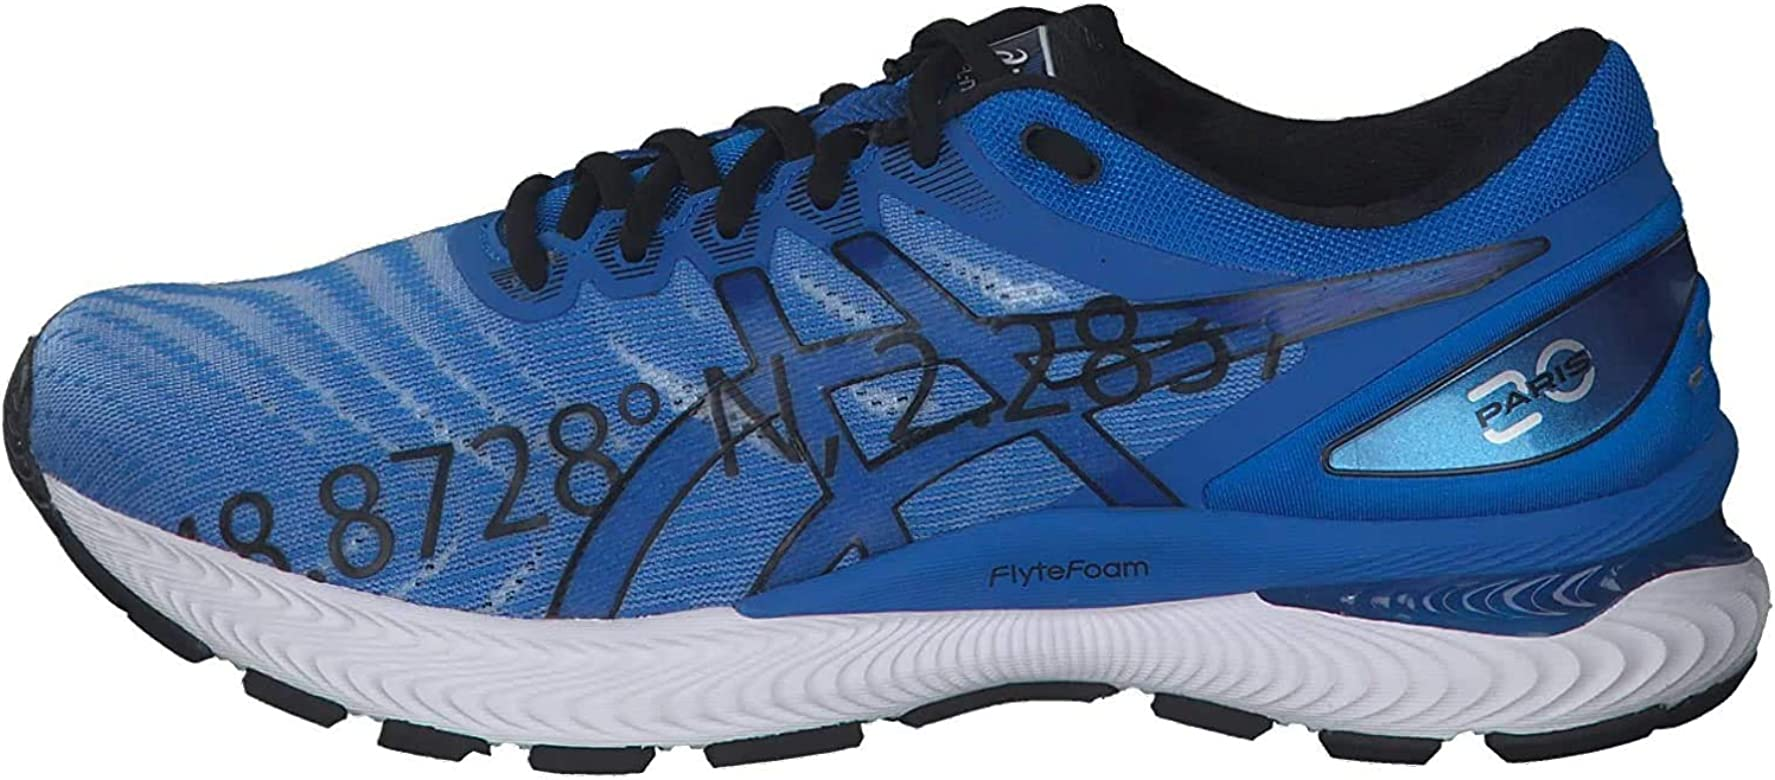 ASICS Gel-Nimbus 22, Zapatillas Deportivas para Hombre, Electric Blue/Electric Blue, 41.5 EU: Amazon.es: Zapatos y complementos